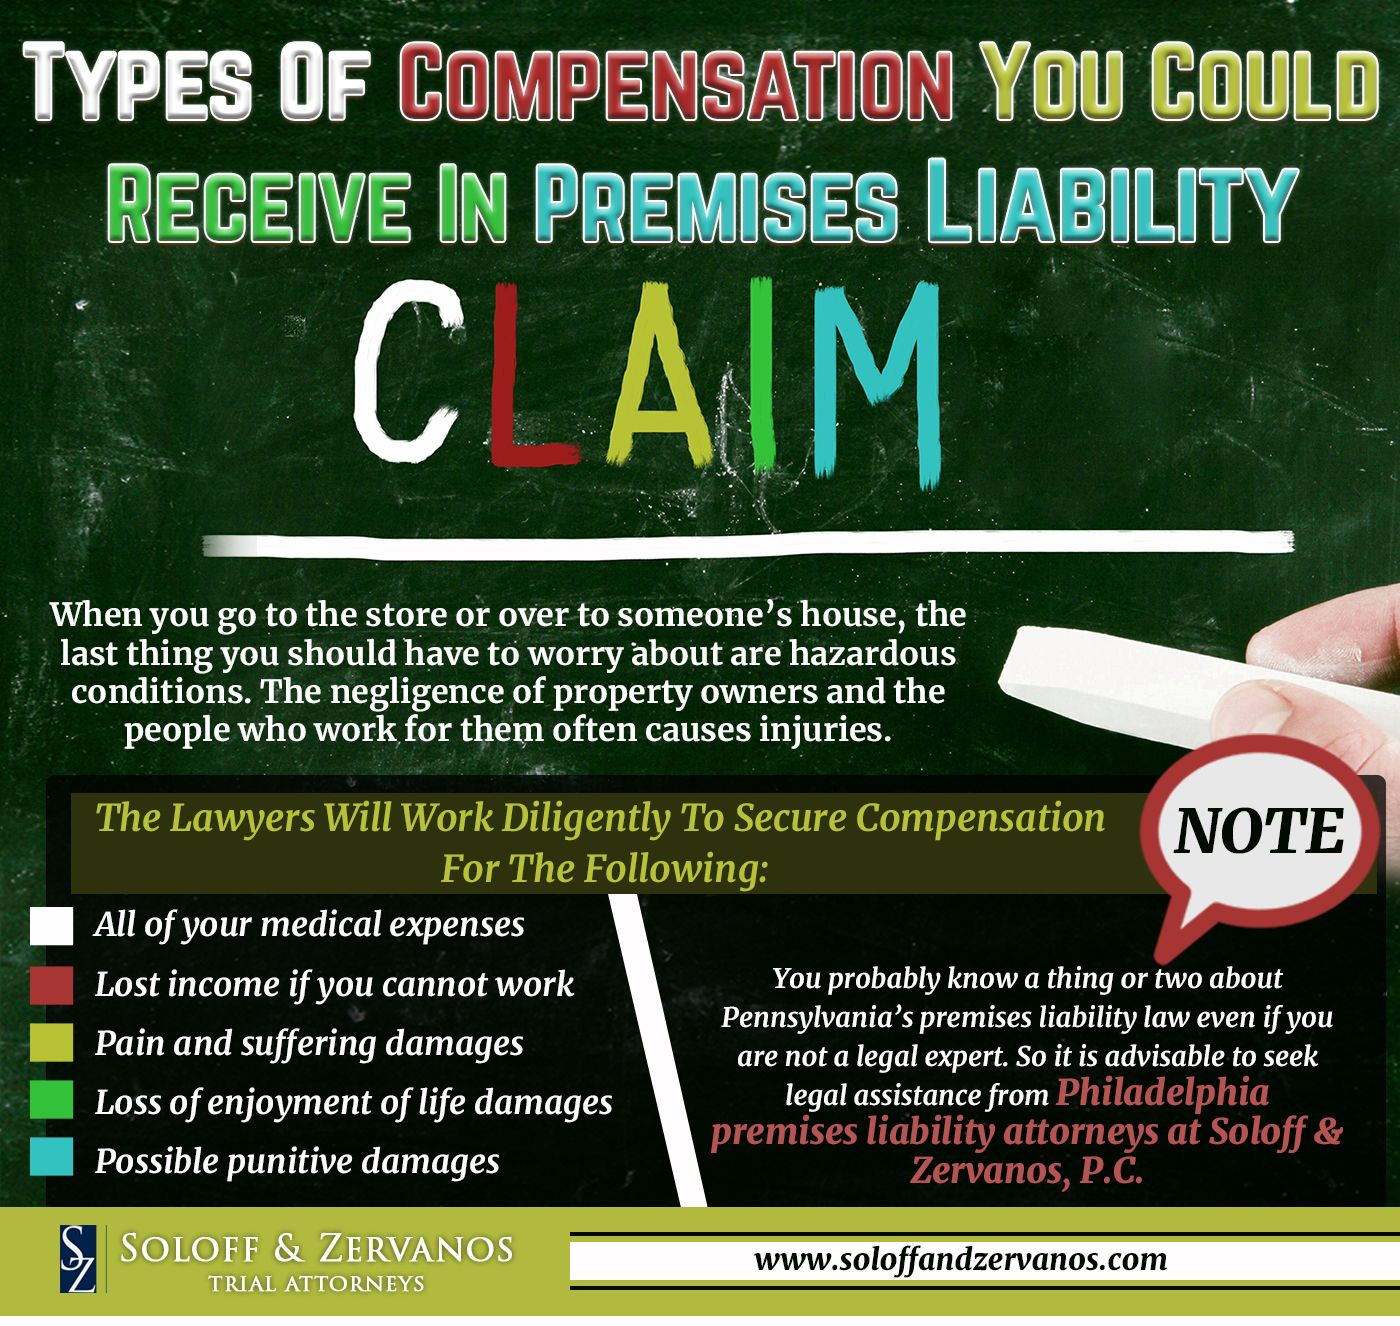 Types of compensation you could receive in premises